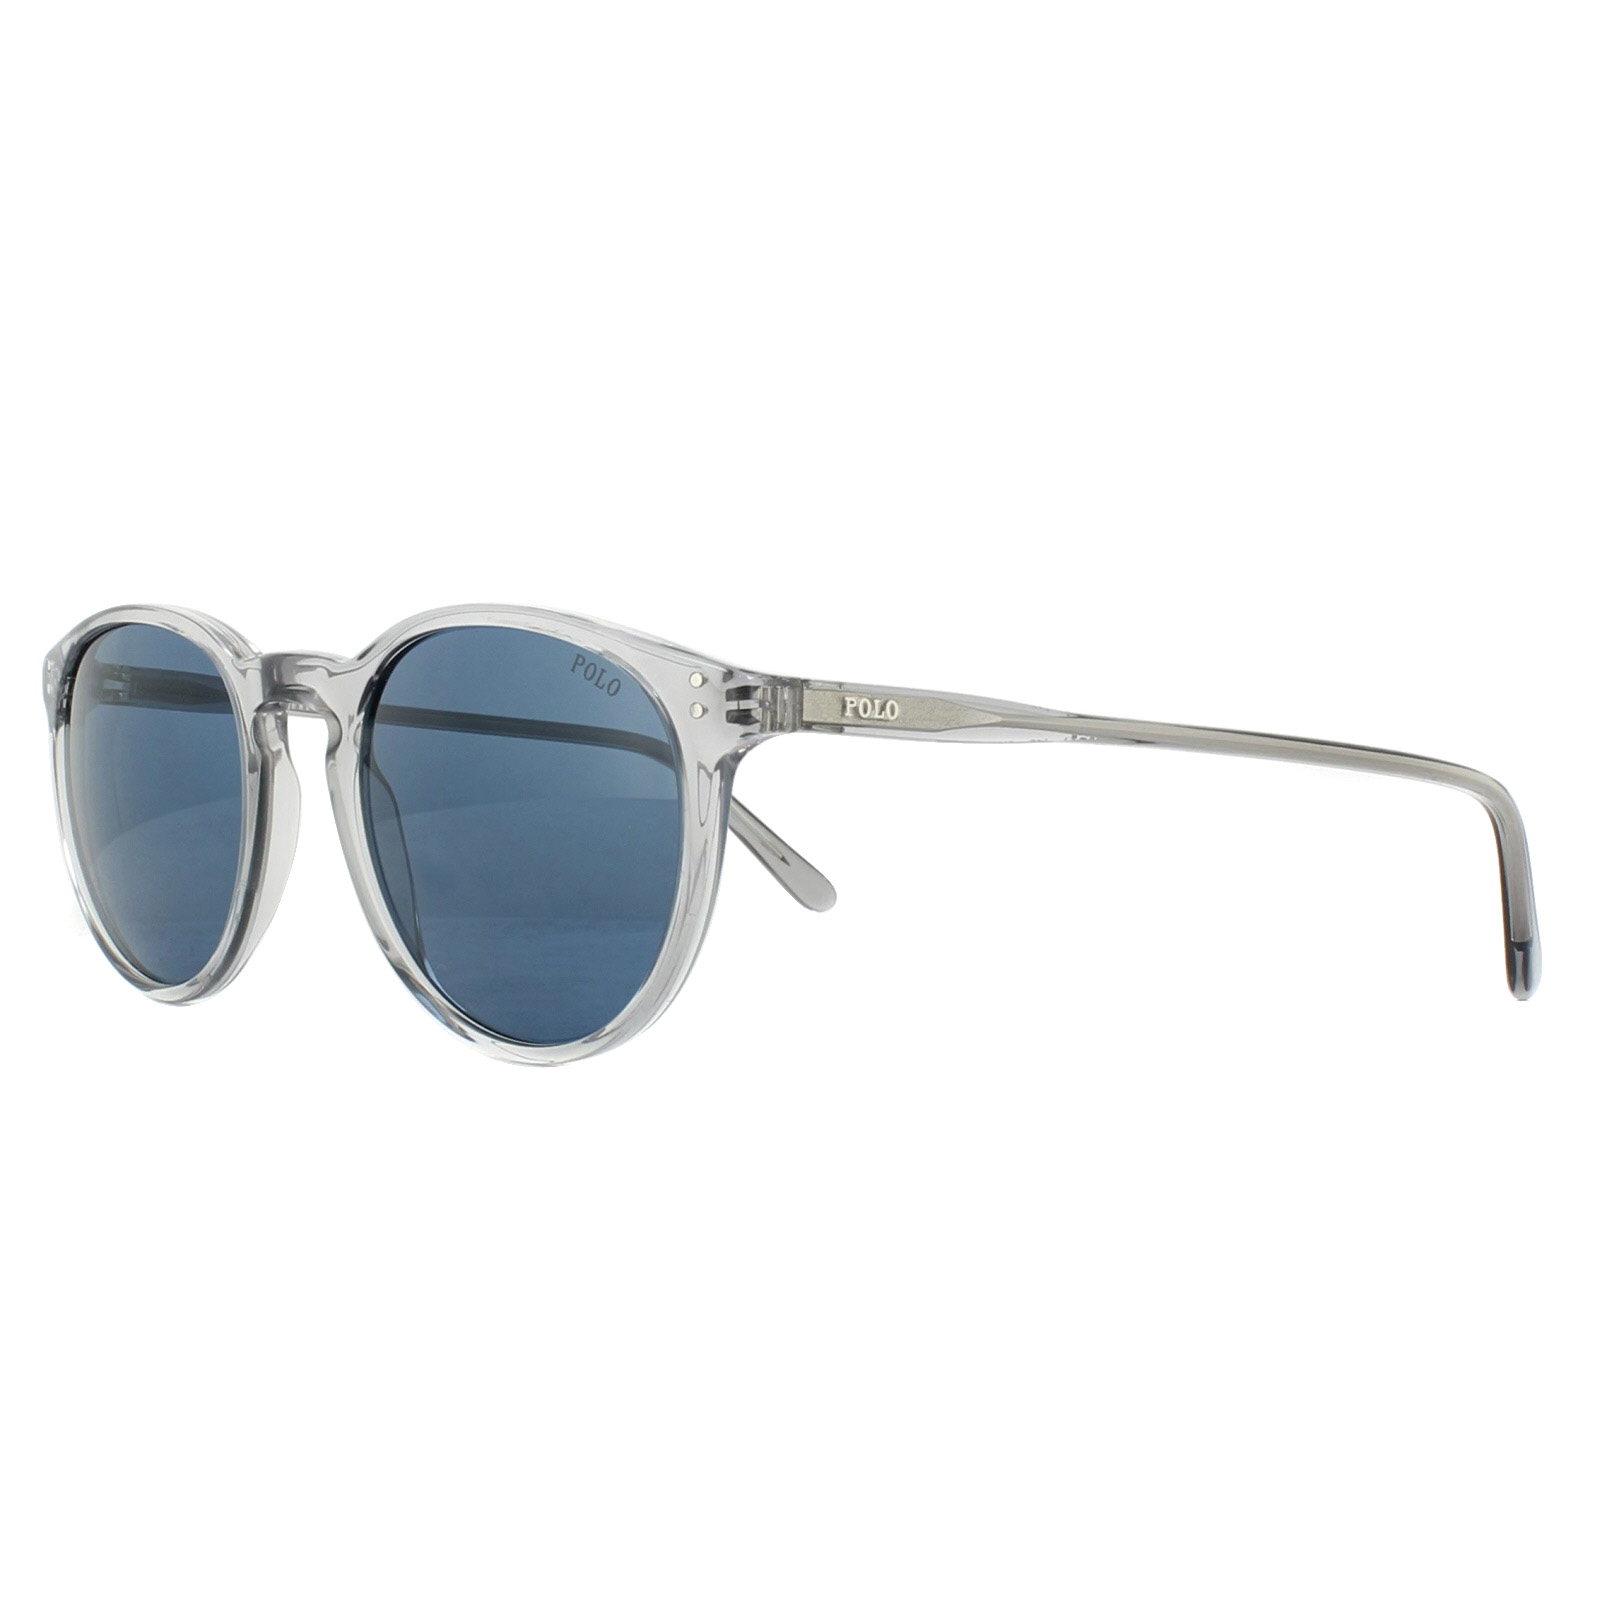 1f5b9f34016 Sentinel Polo Ralph Lauren Sunglasses PH4110 541380 Shiny Transparent Grey  Dark Blue